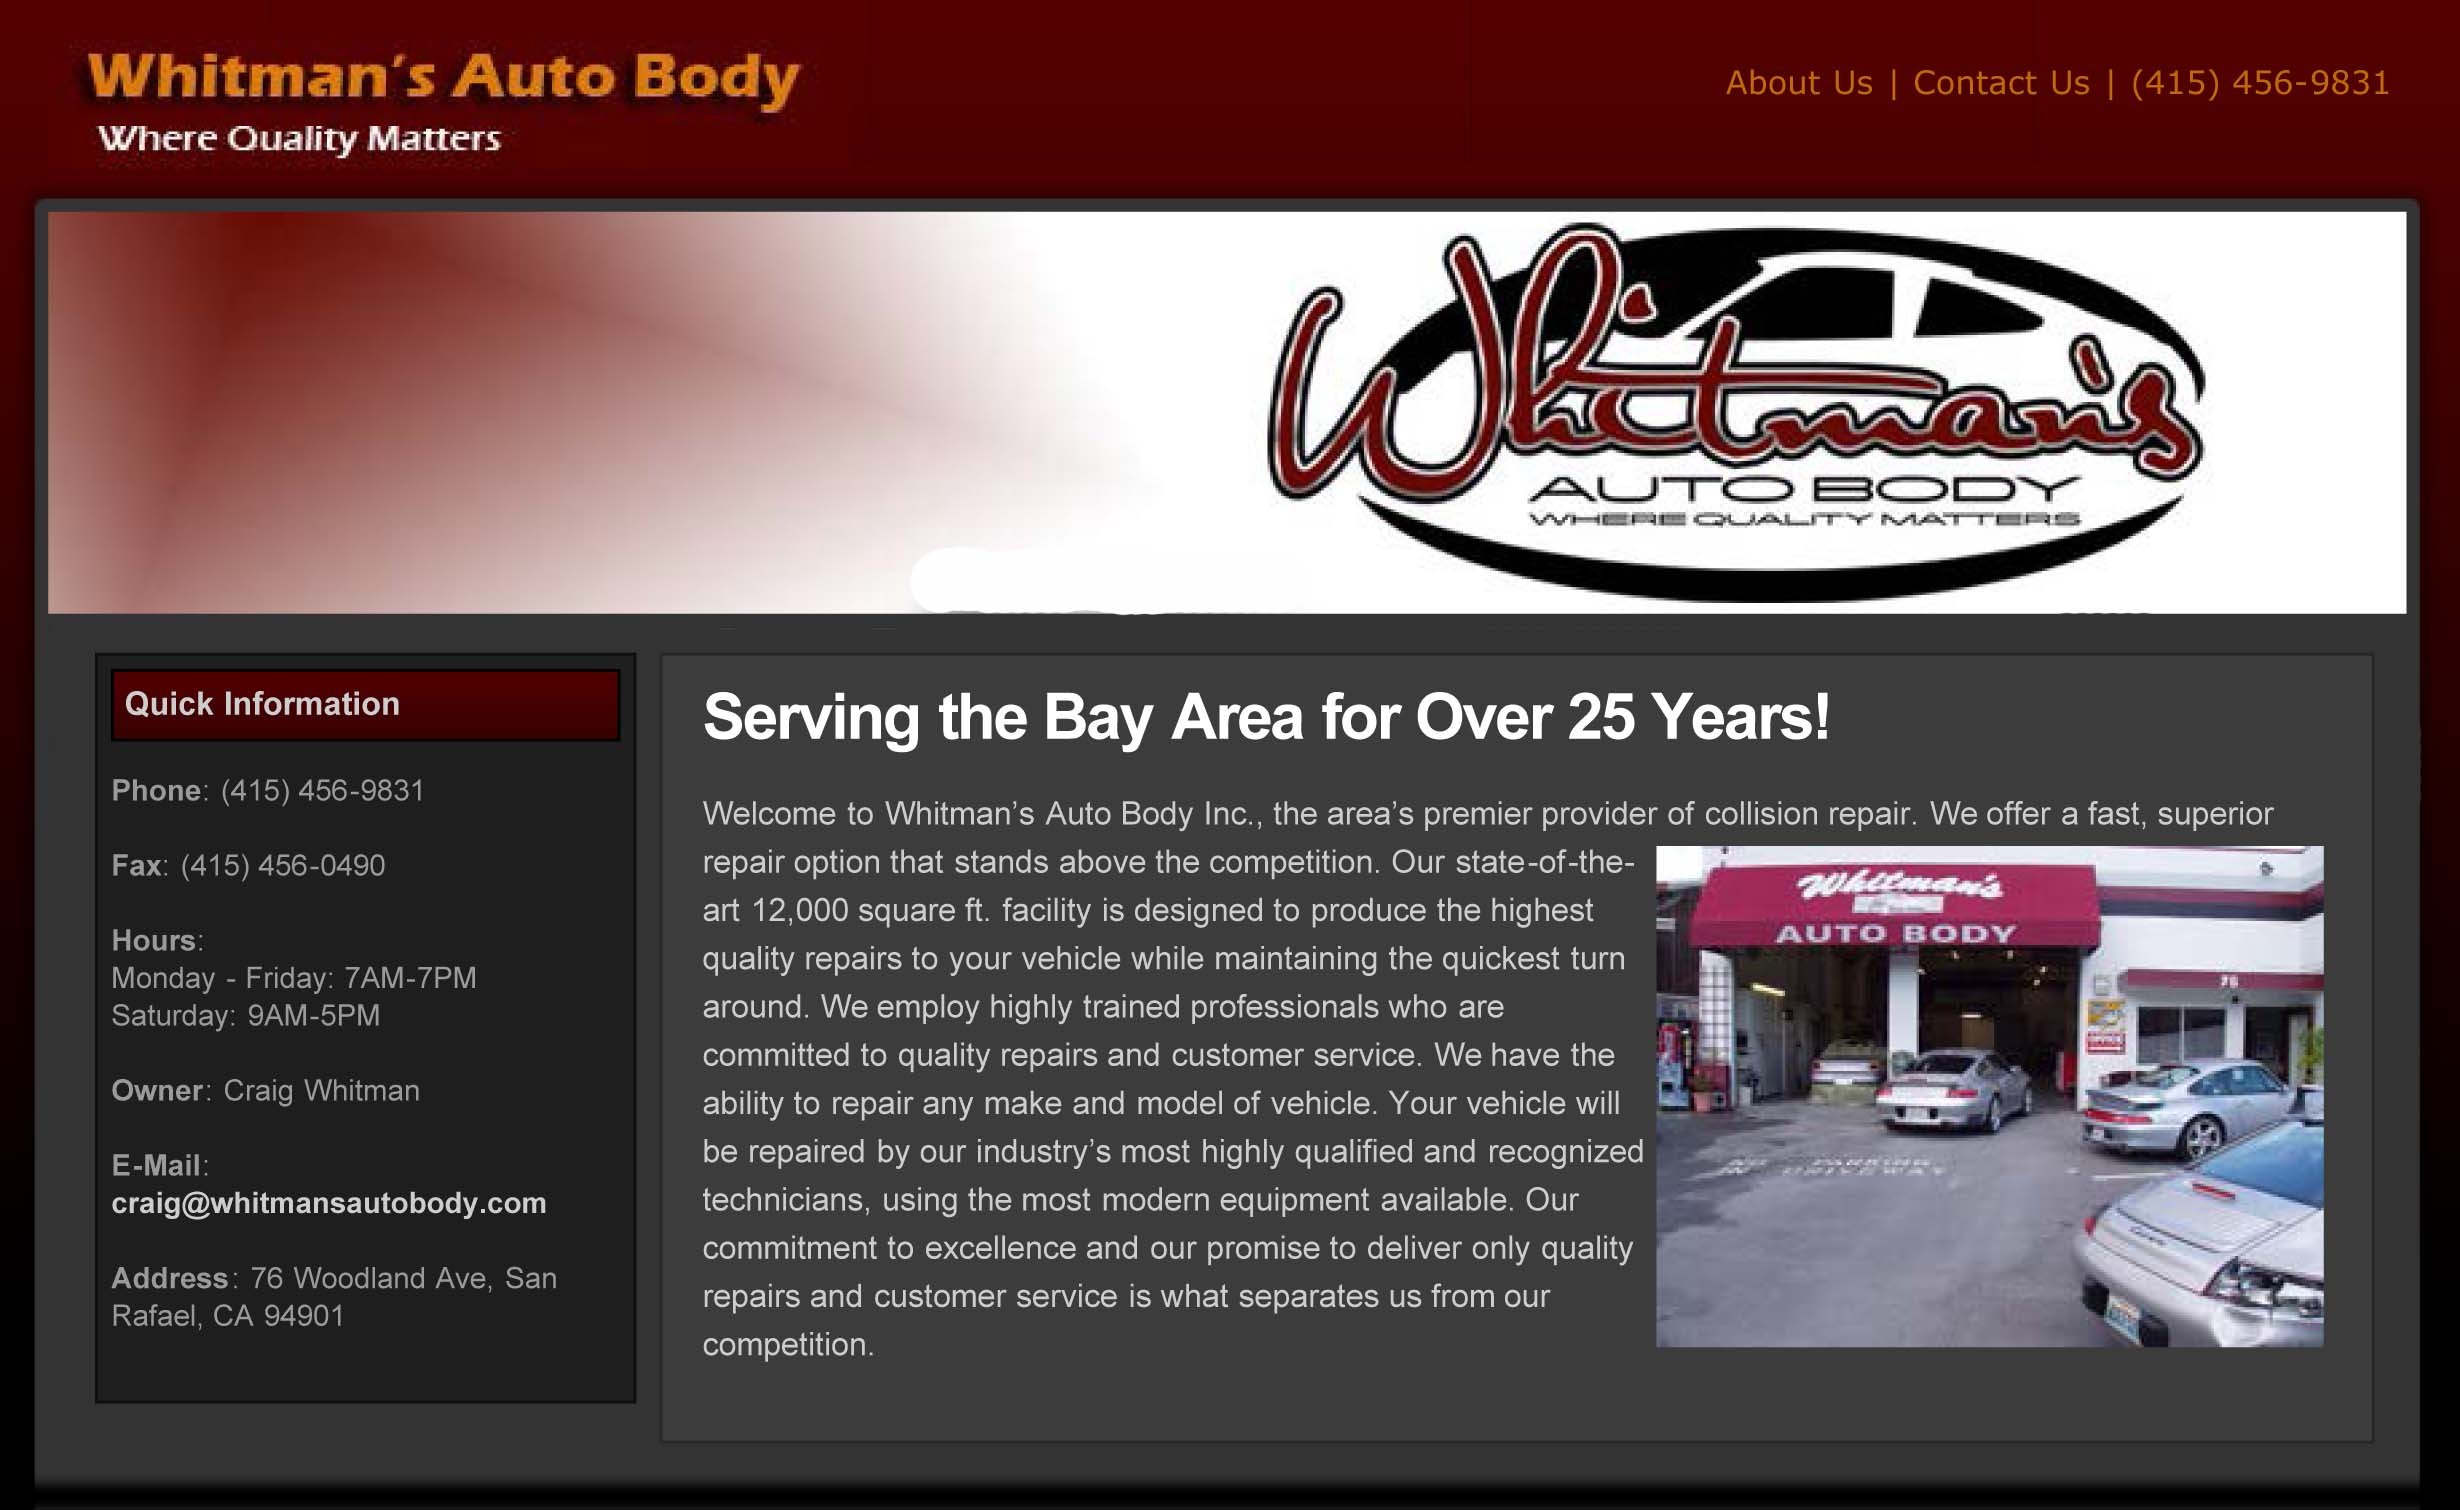 Whitman's Auto Body